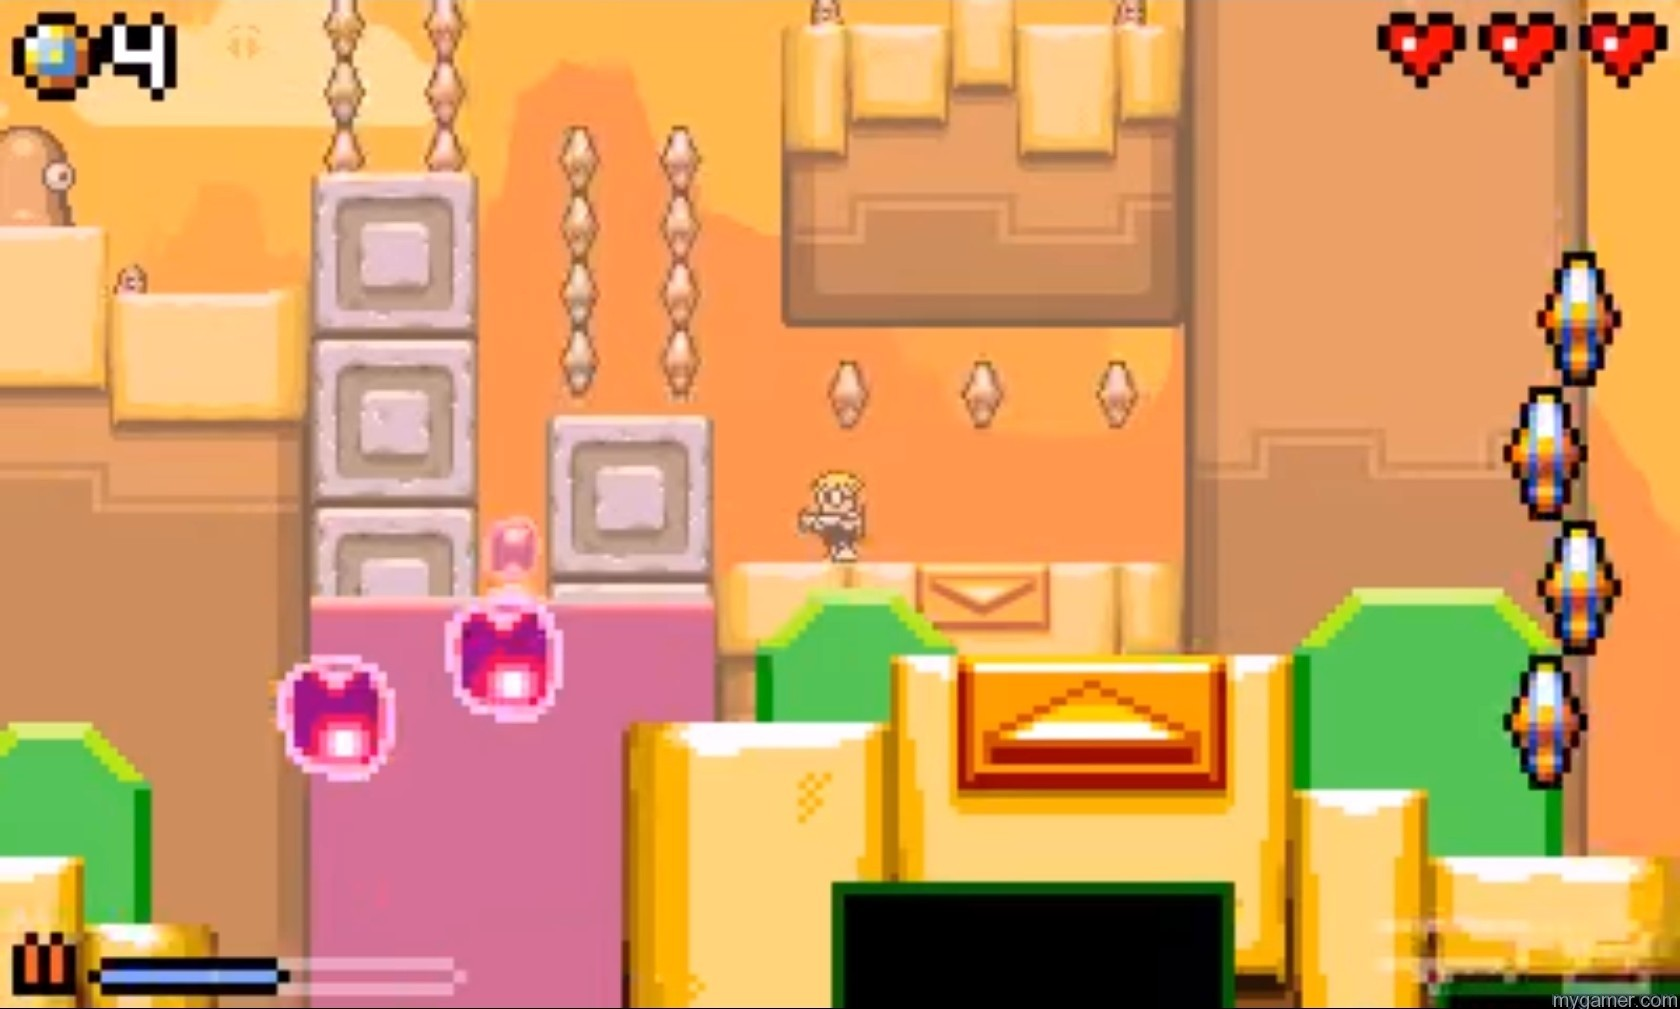 Mutant-Mudds-Super-Challenge-test-2 Mutant Mudds Super Challenge PC Review Mutant Mudds Super Challenge PC Review Mutant Mudds Super Challenge test 2